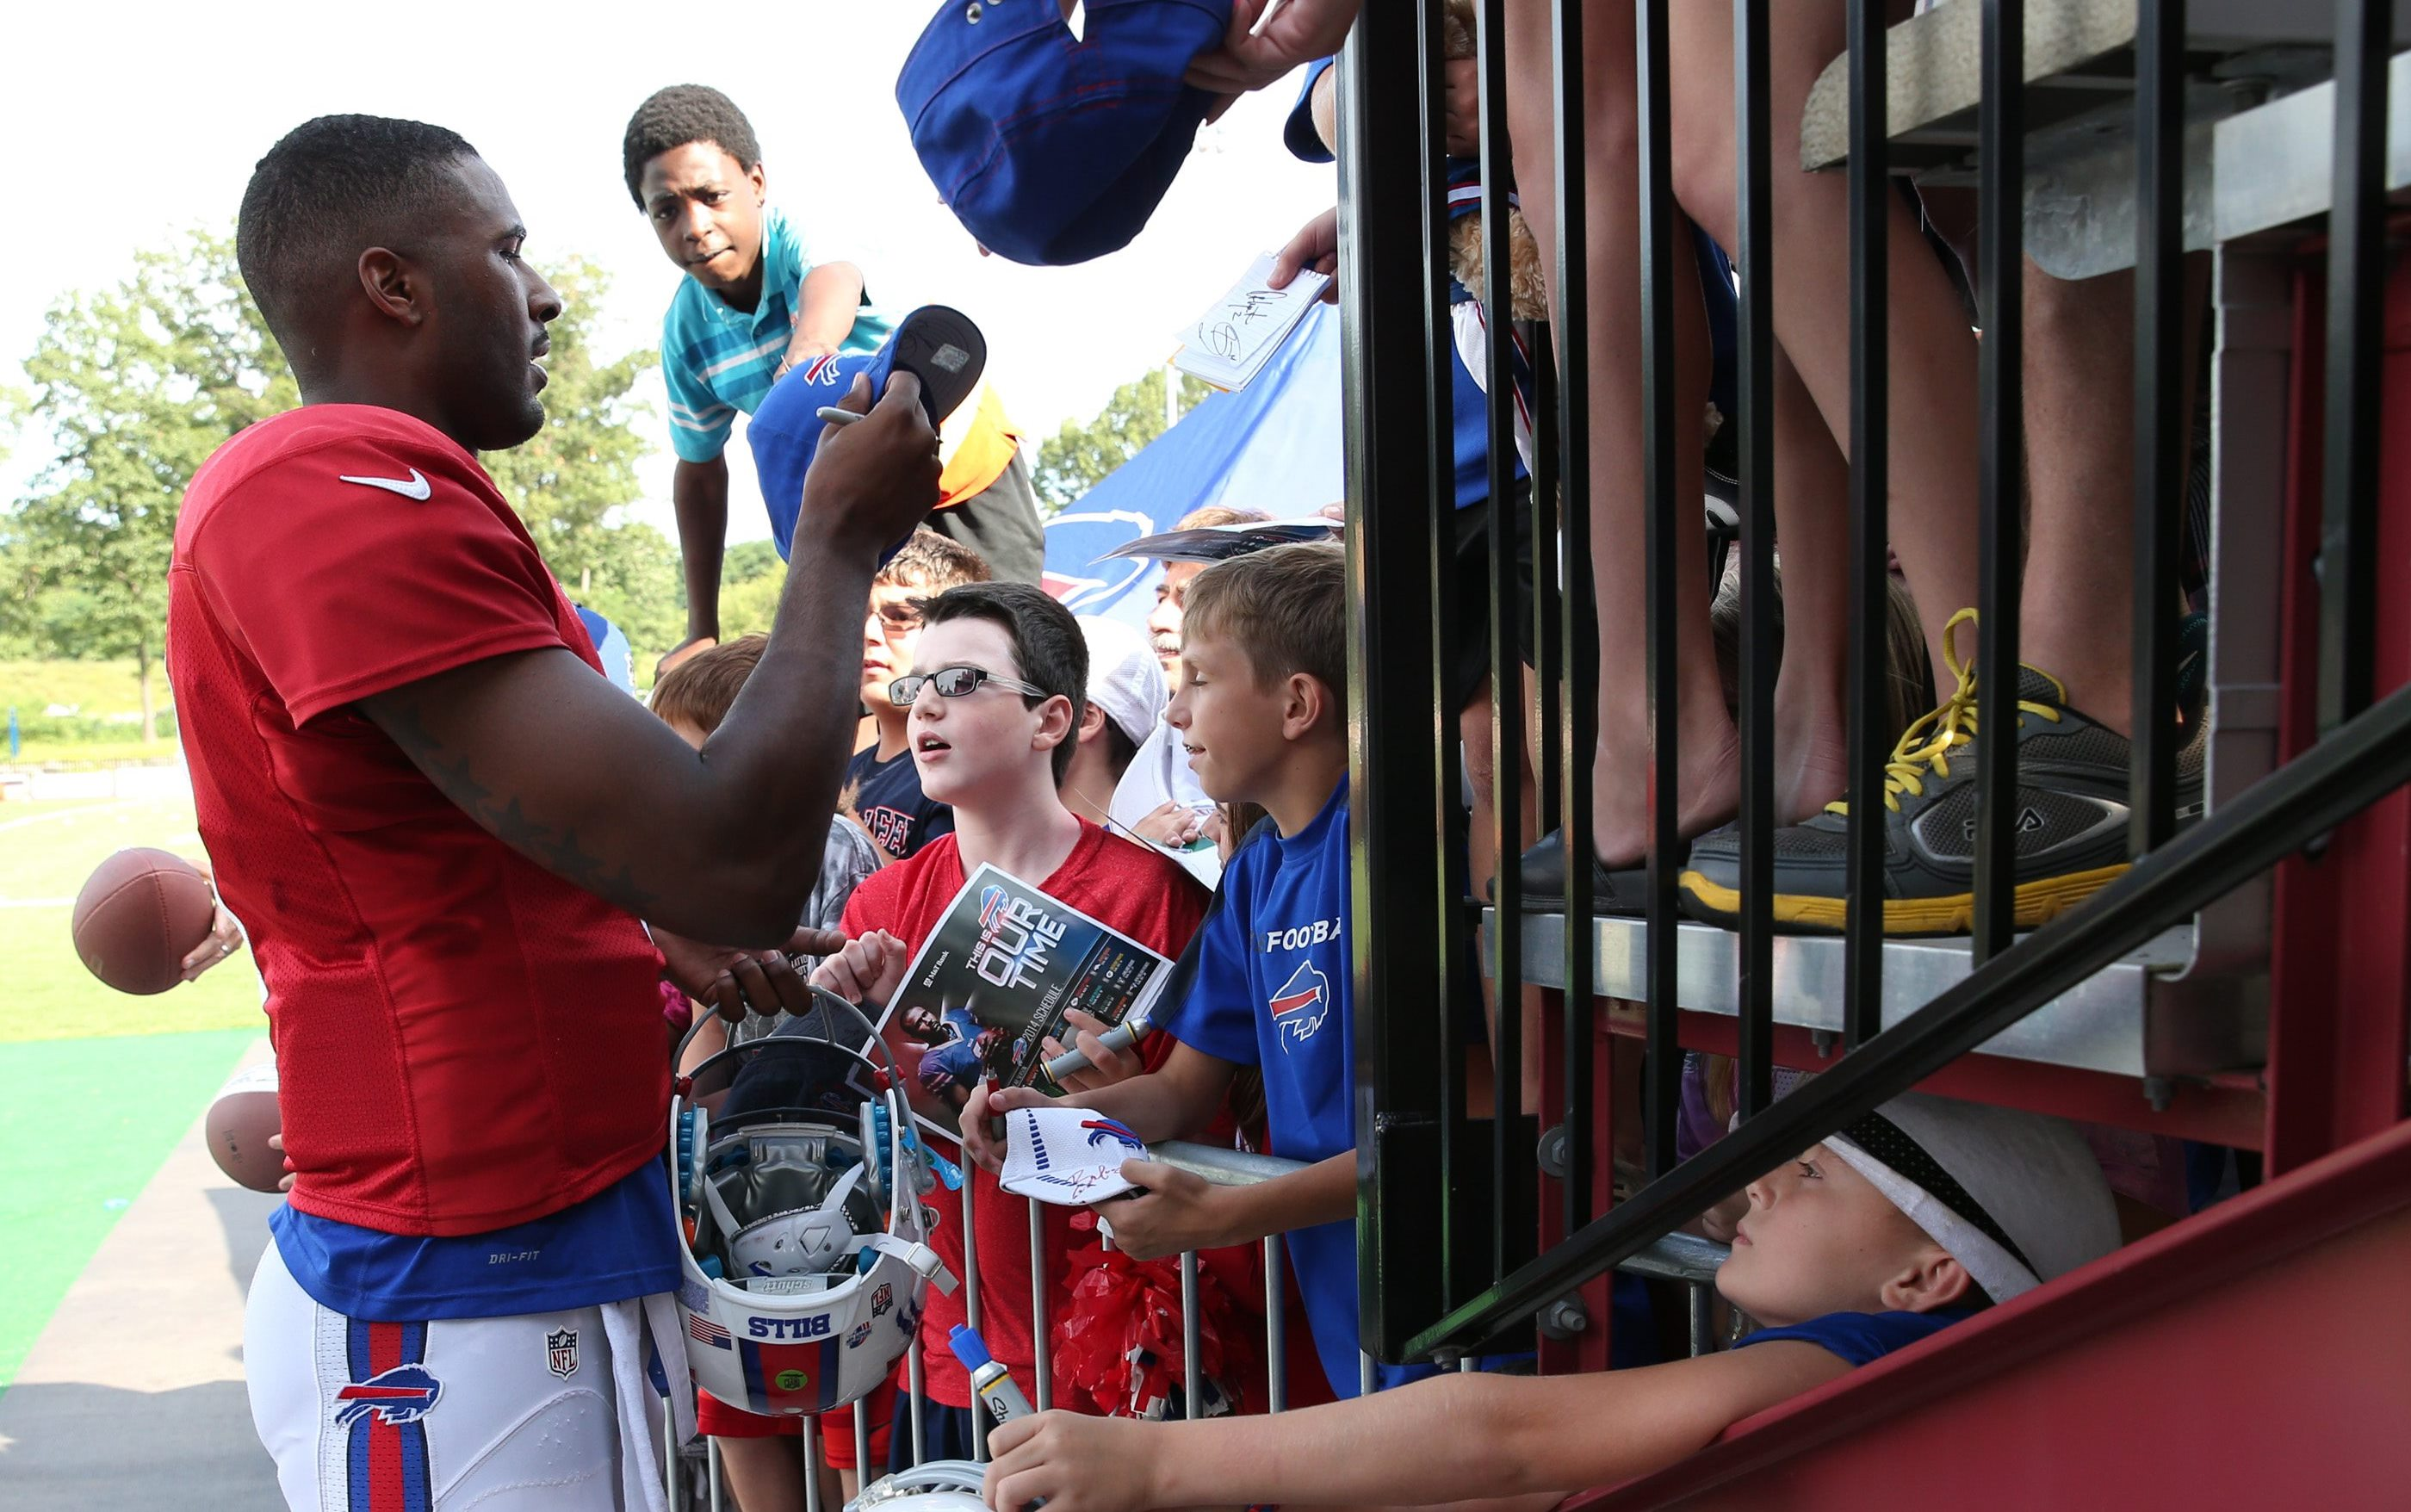 Fans look for every angle to get autographs at camp, as they did with EJ Manuel last year.